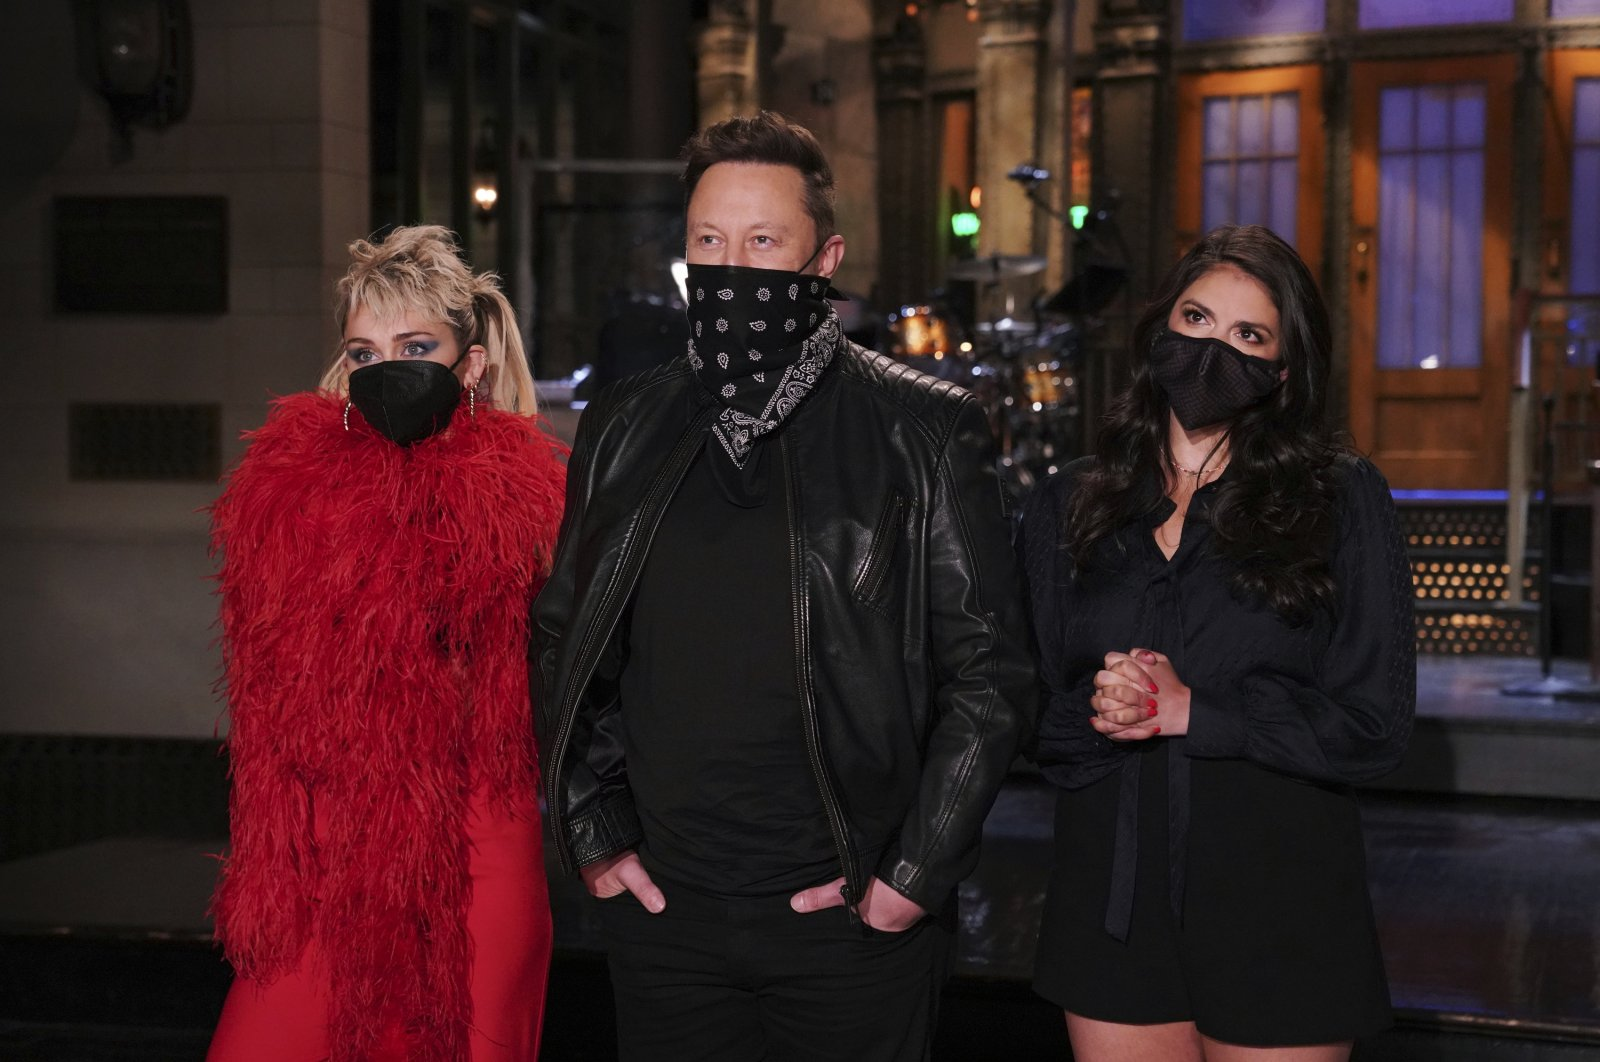 """Musical guest Miley Cyrus (L), host Elon Musk (C), and Cecily Strong (R) appear on stage for the sketch comedy and variety show """"Saturday Night Live,"""" during promos in Studio 8H in New York City, U.S., May 6, 2021. (NBC via AP)"""